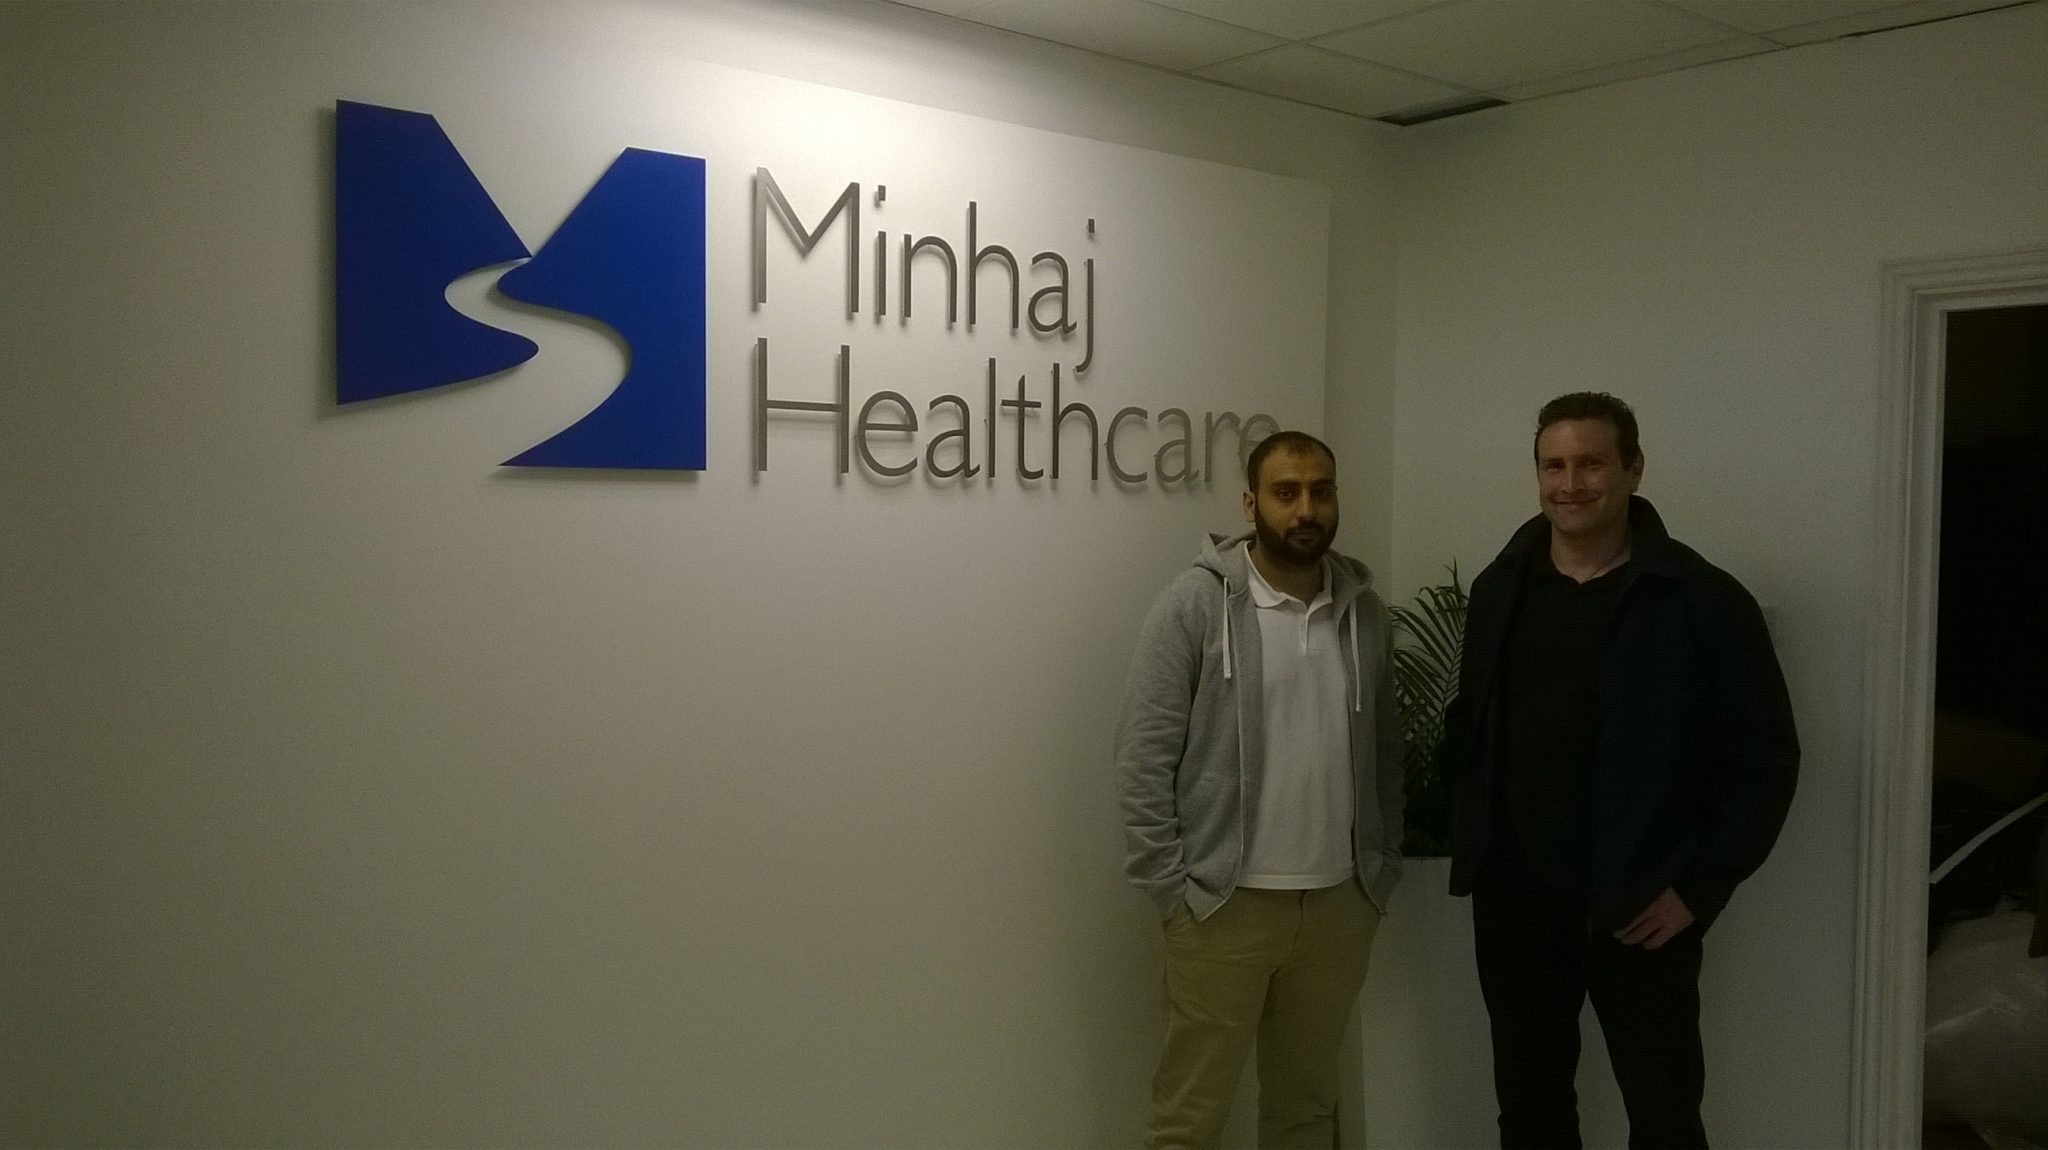 5mm deep stainless steel powdercoated signs made for Minhaj Healthcare in London by www.e-signs.co.uk